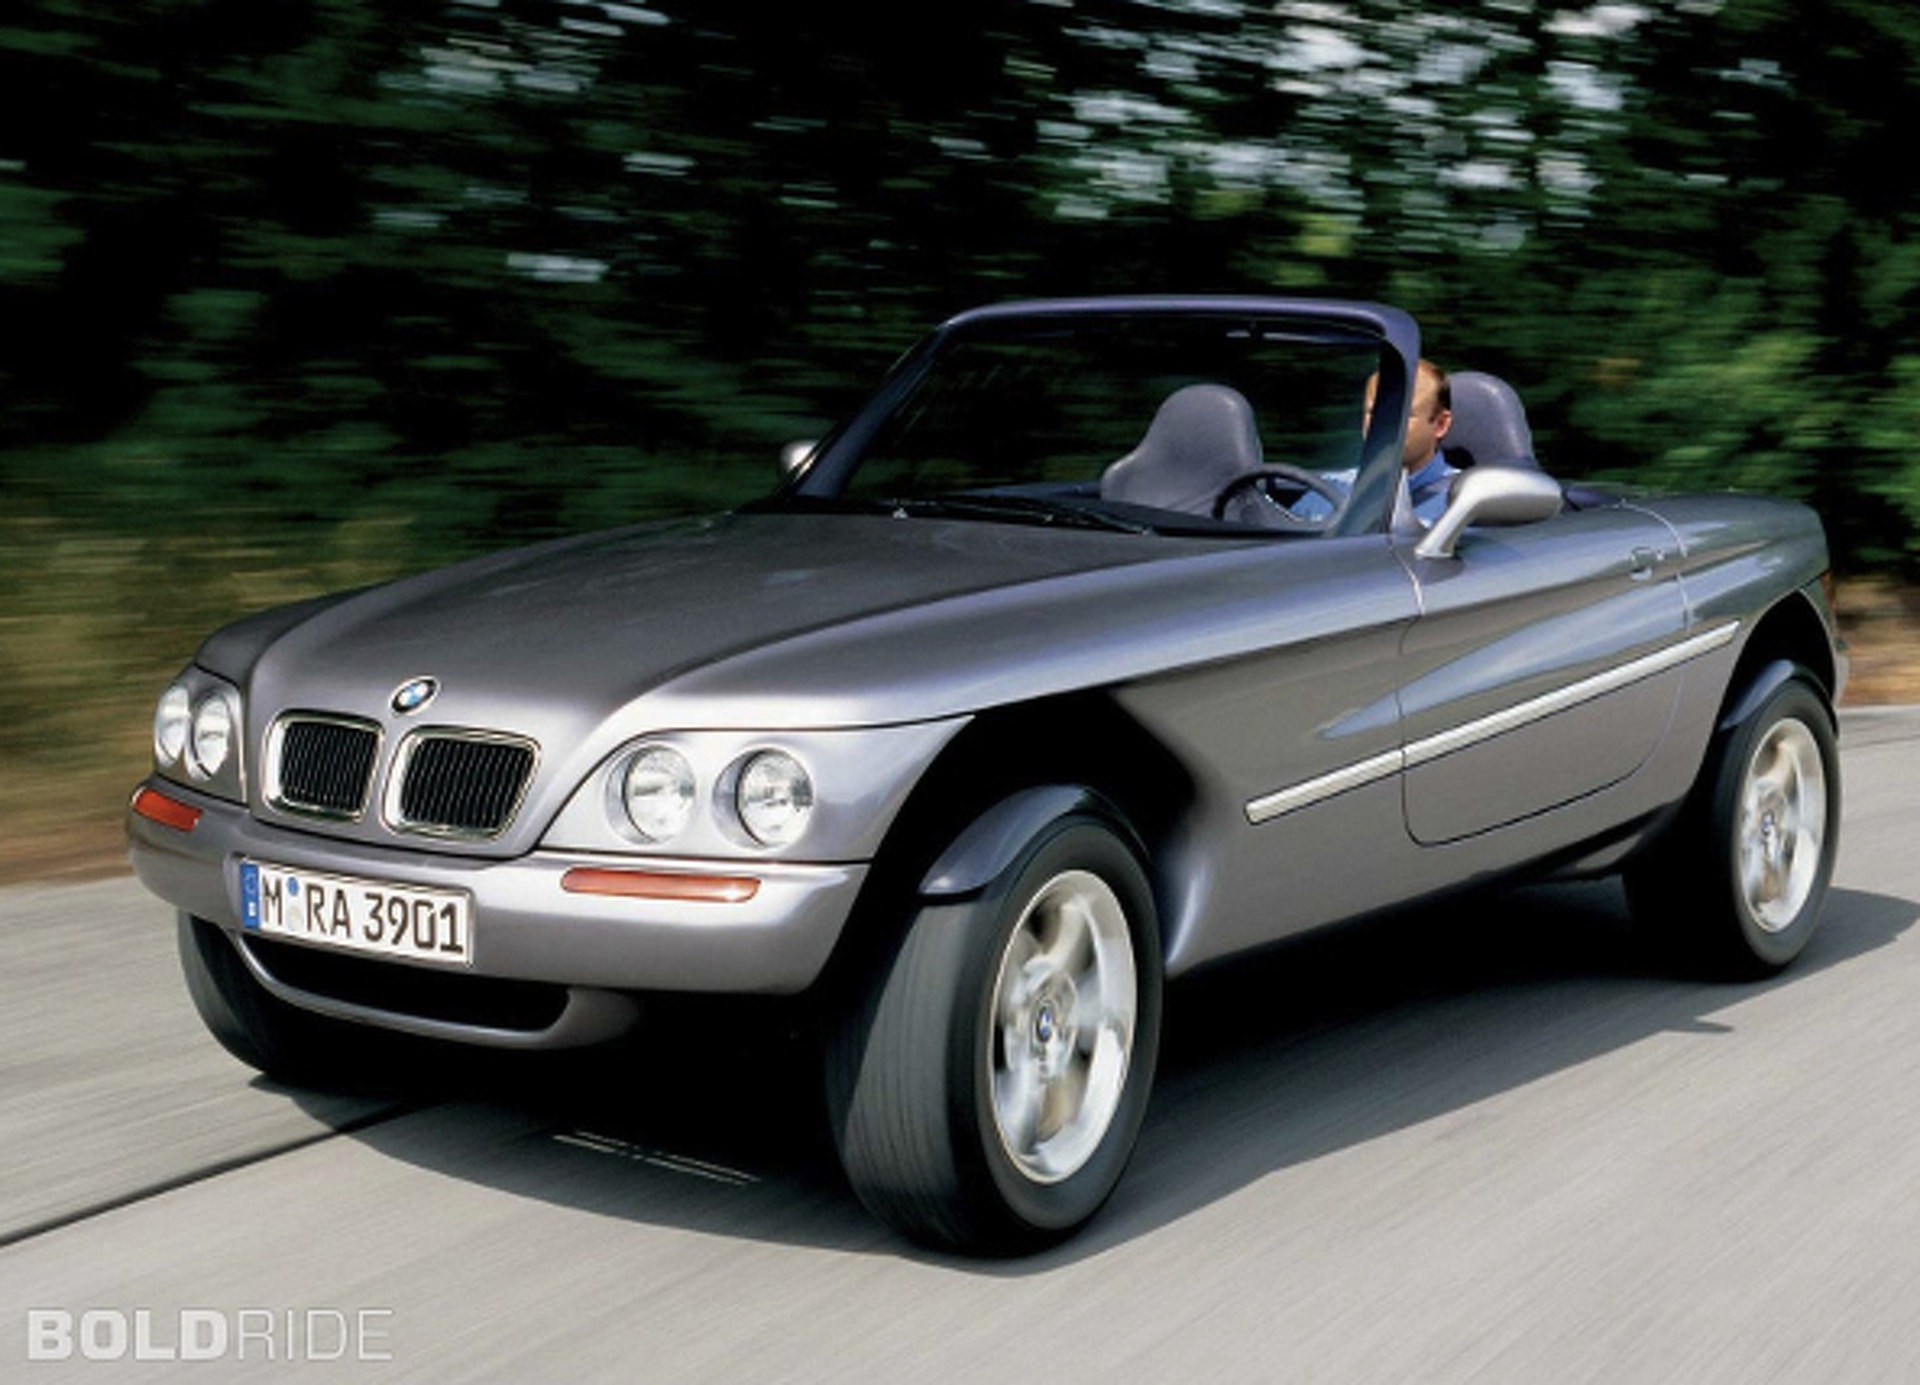 Ten Stunning BMW Designs Brought to Life